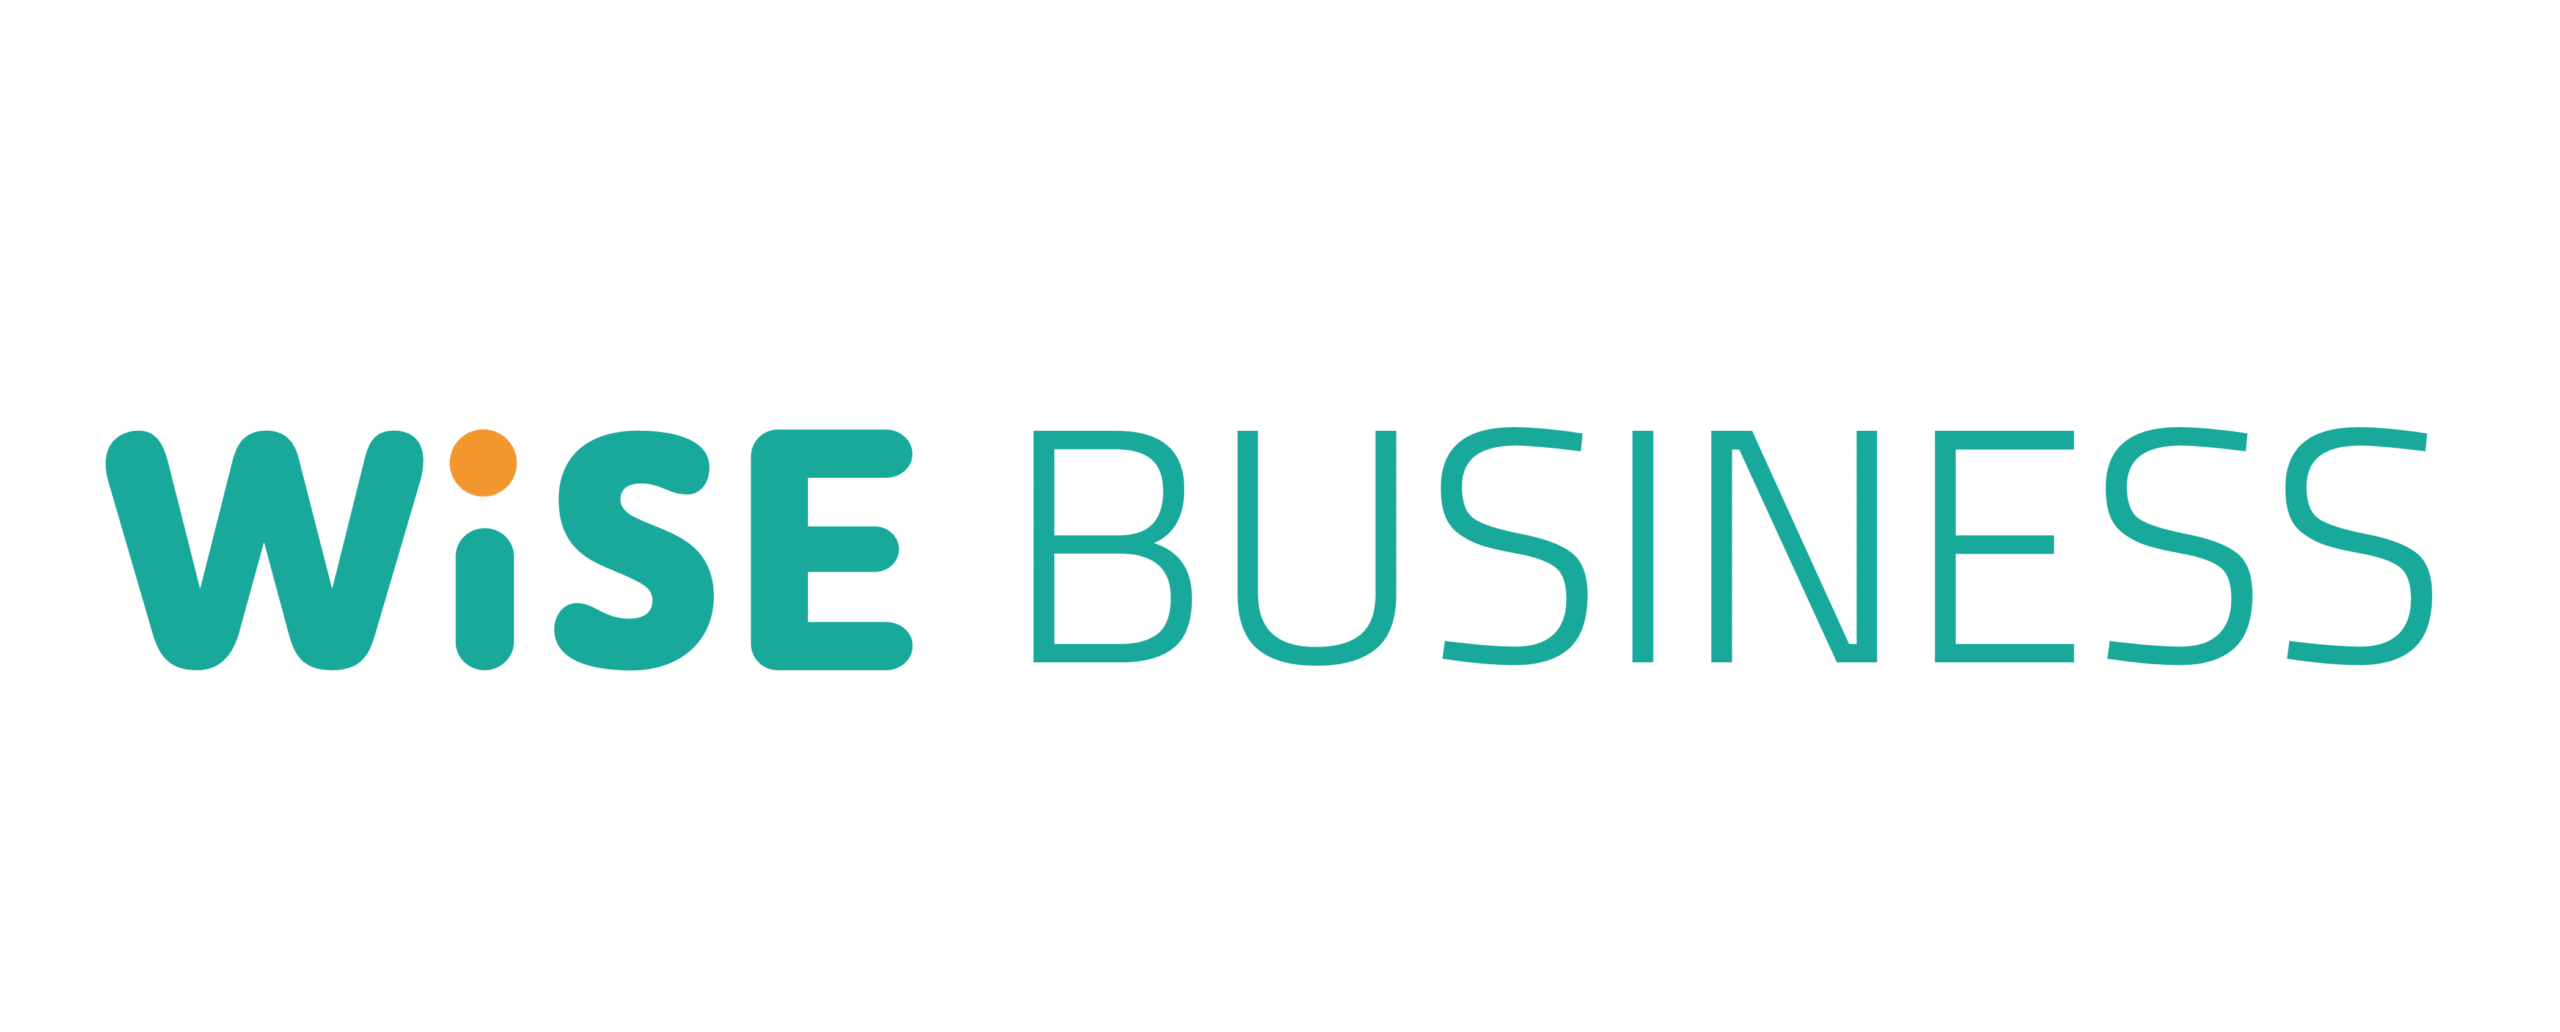 Wise business logo